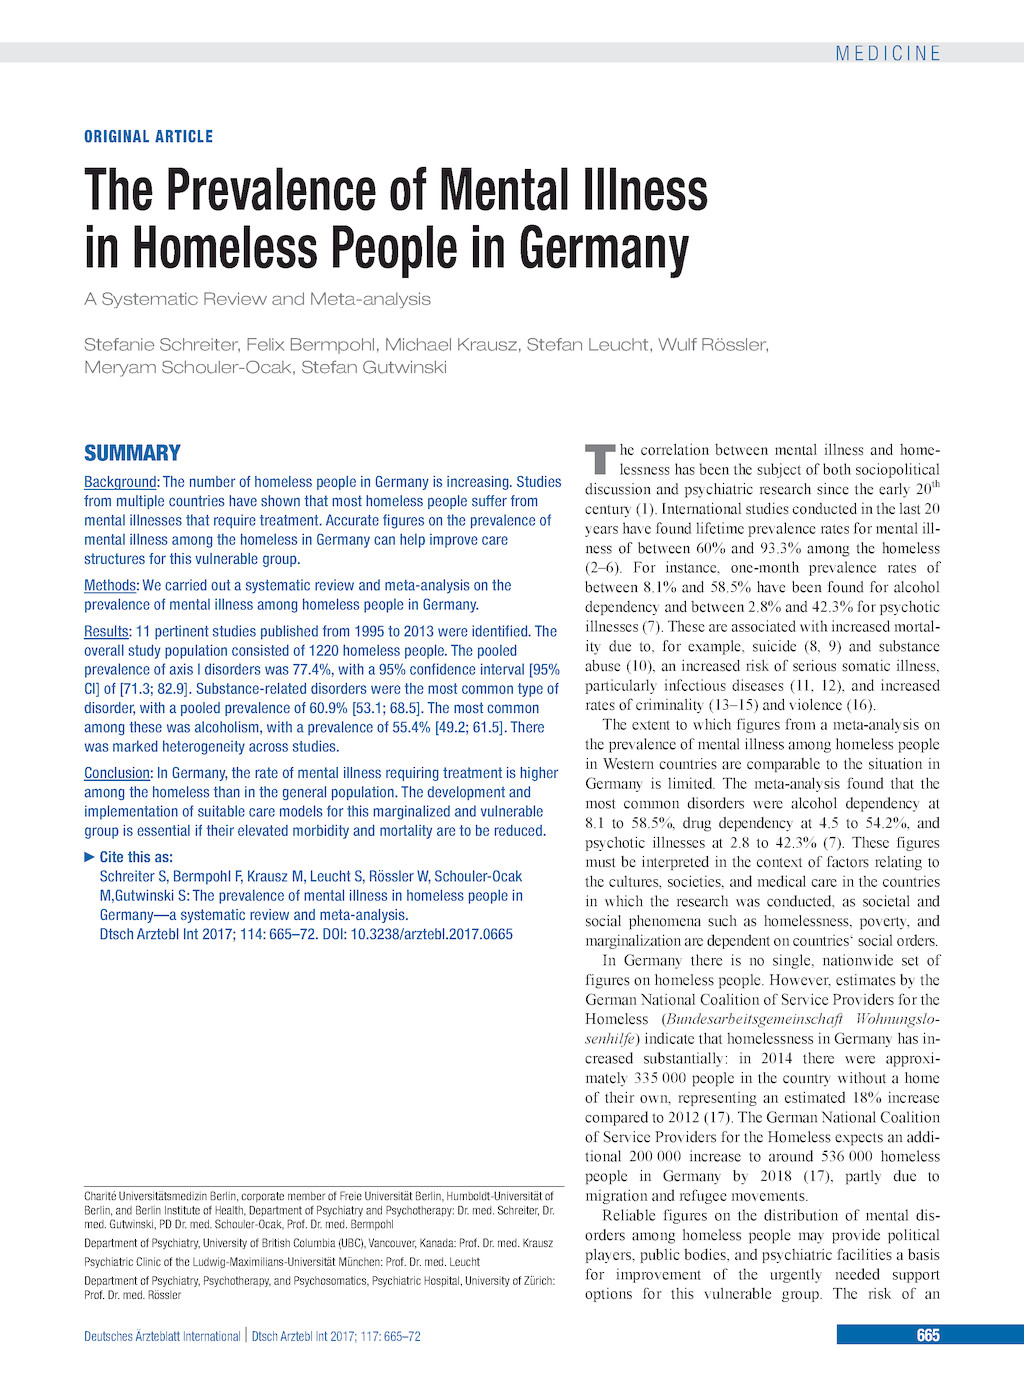 The Prevalence Of Mental Illness In Homeless People In Germany